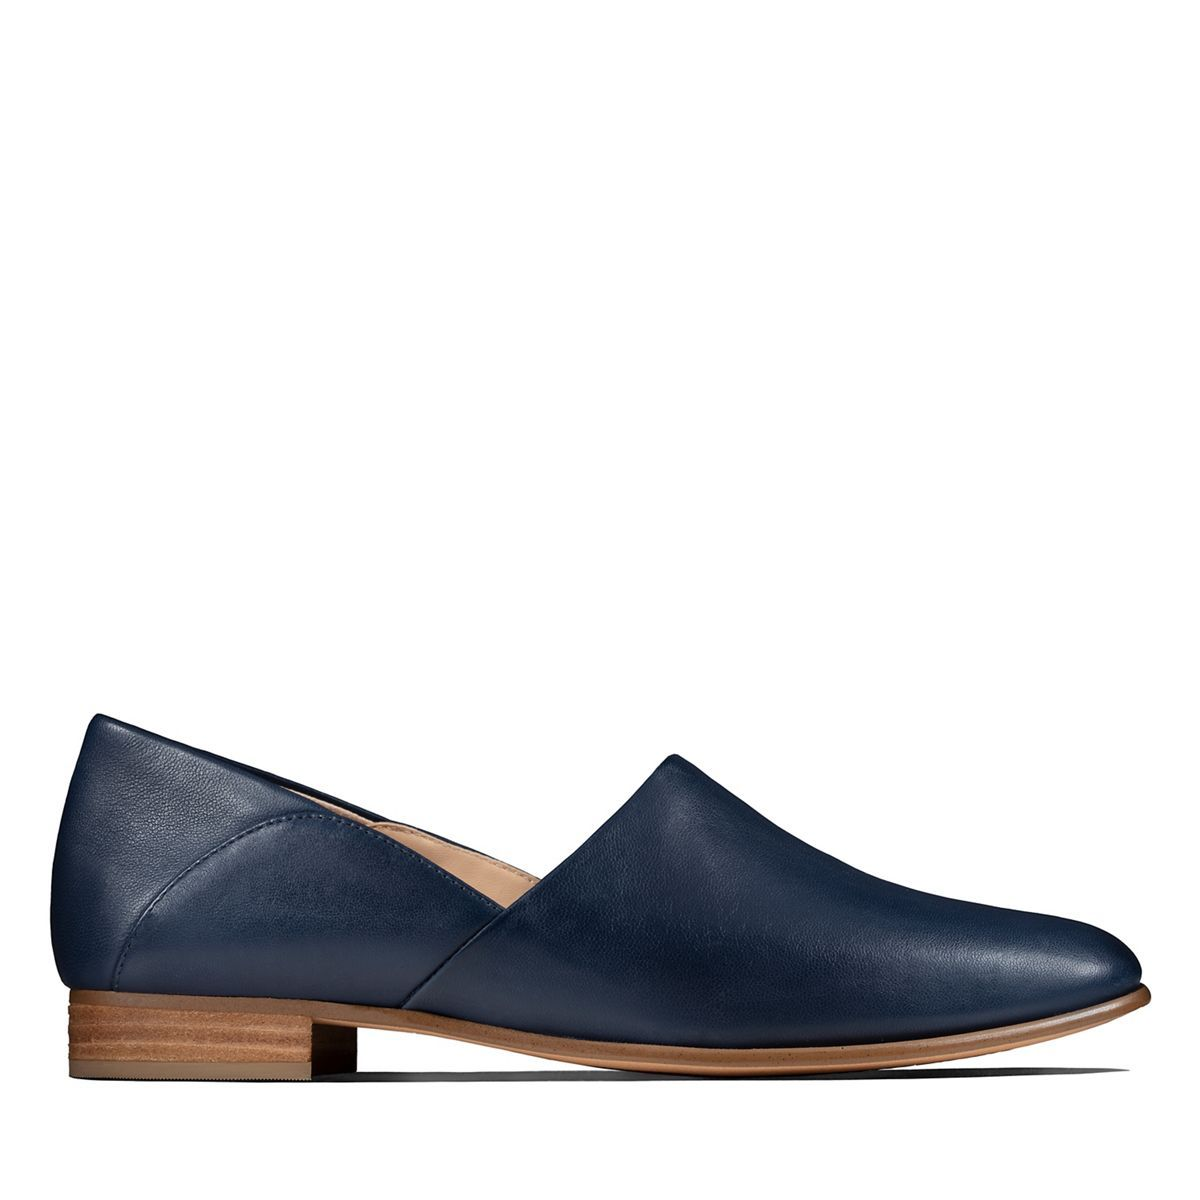 Navy leather shoes, Clarks shoes women